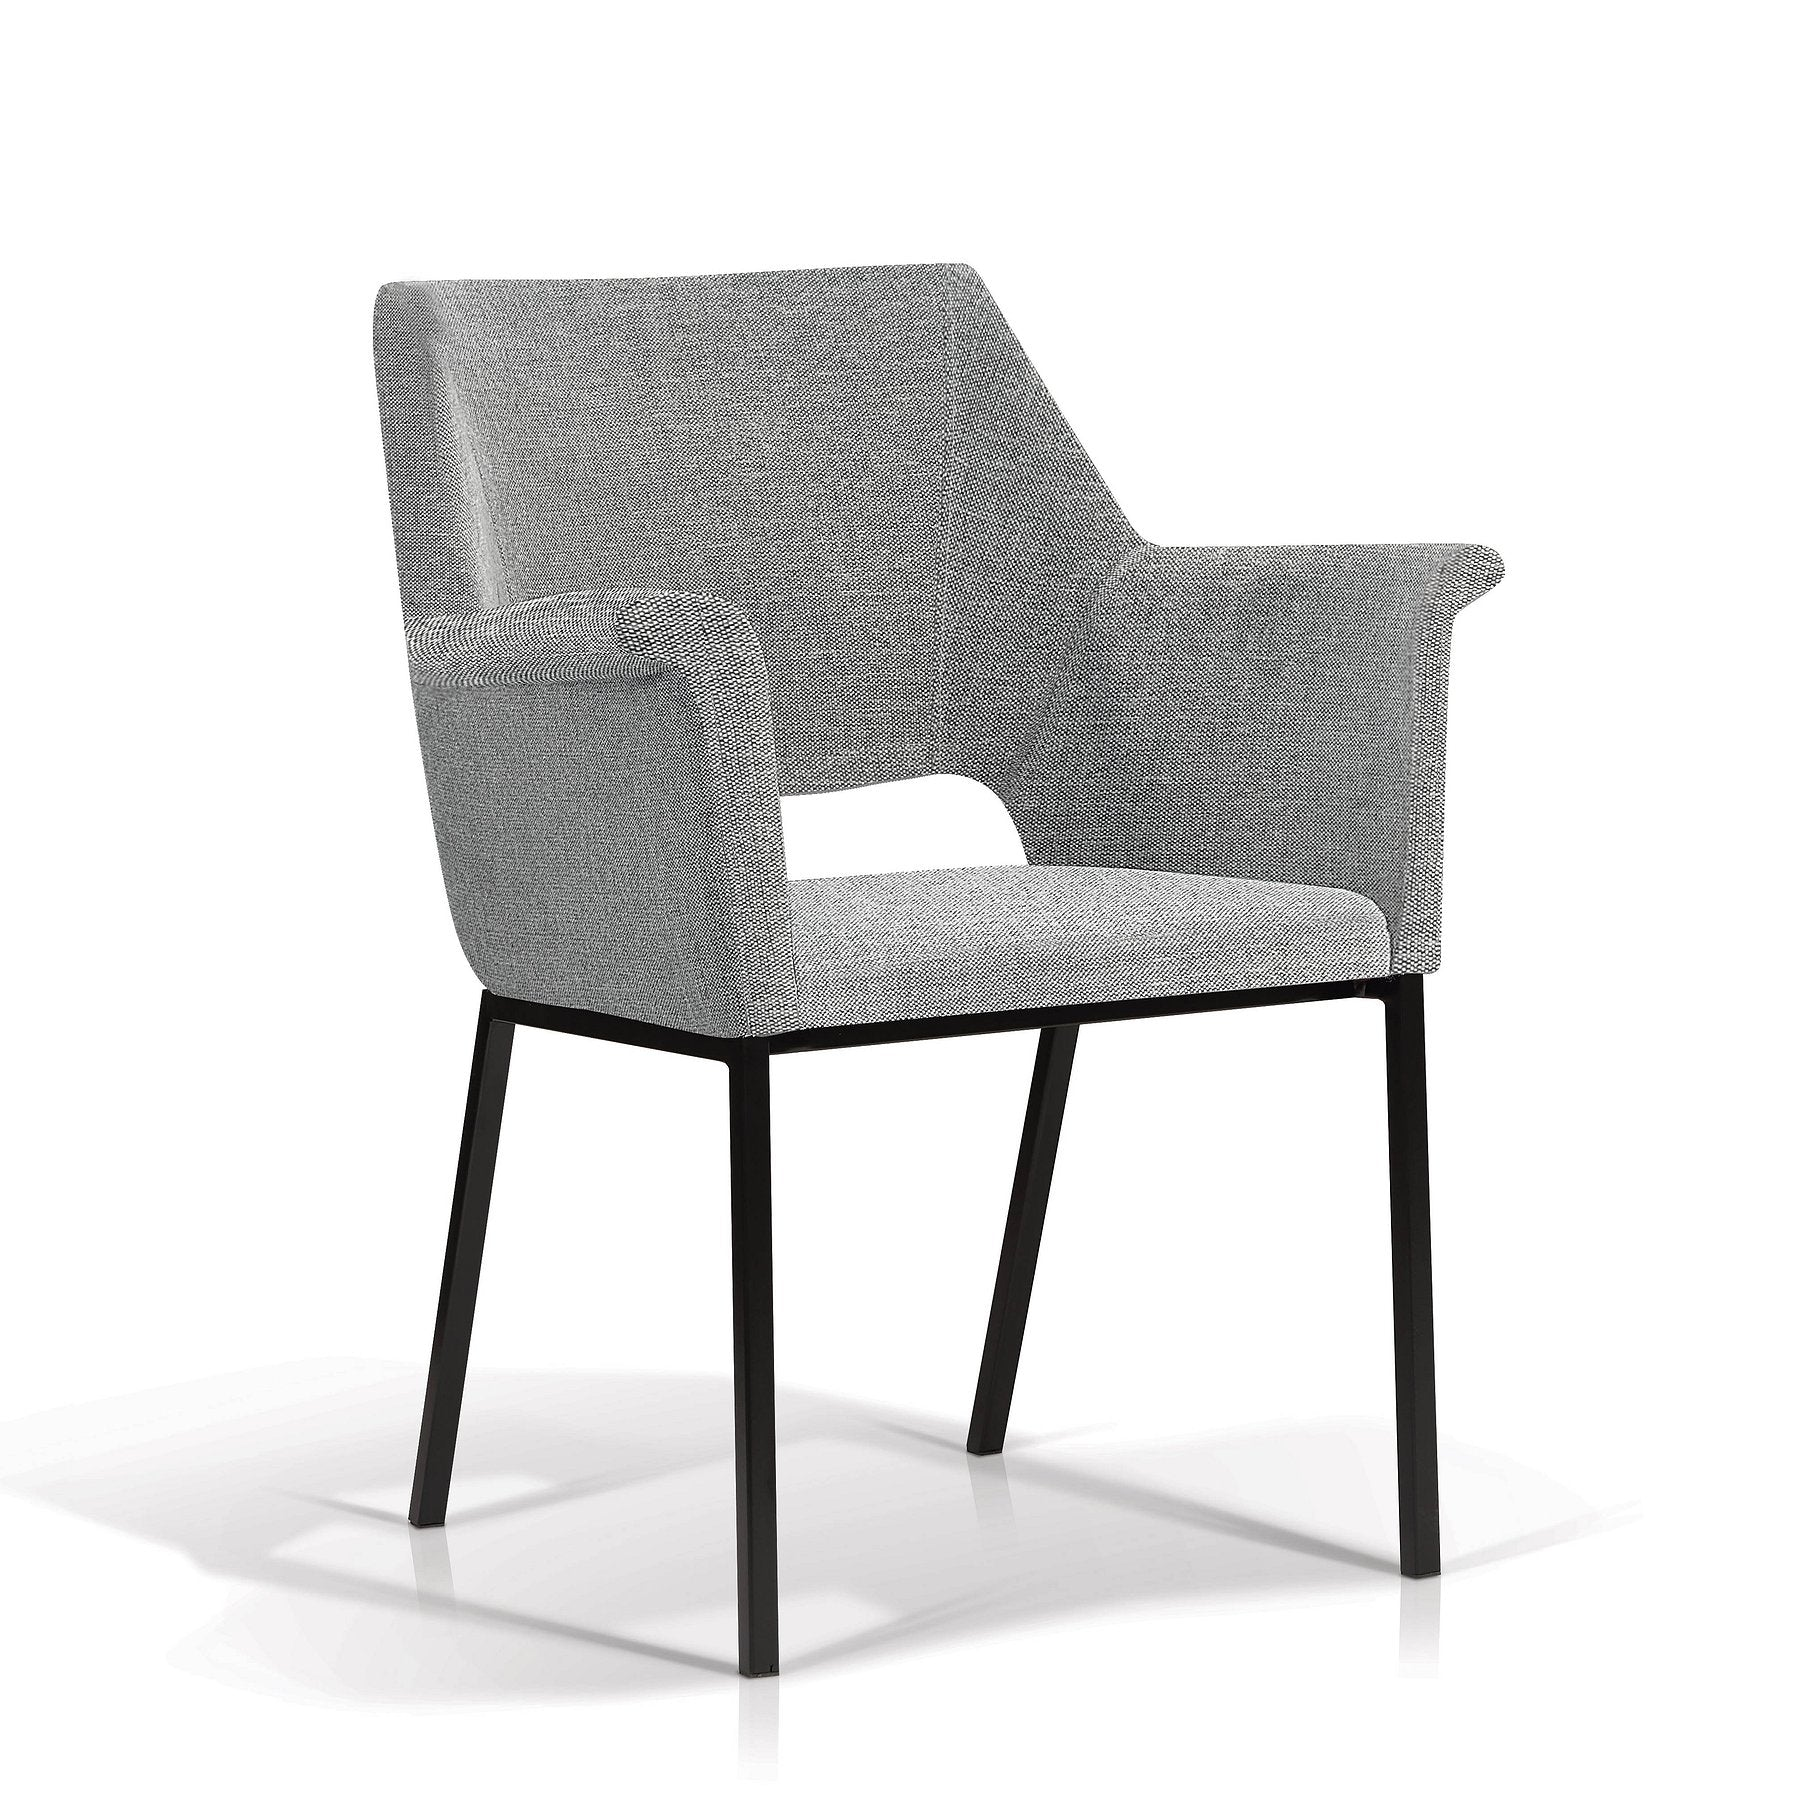 PB-03ARI Arm Chair-Palma-Brava